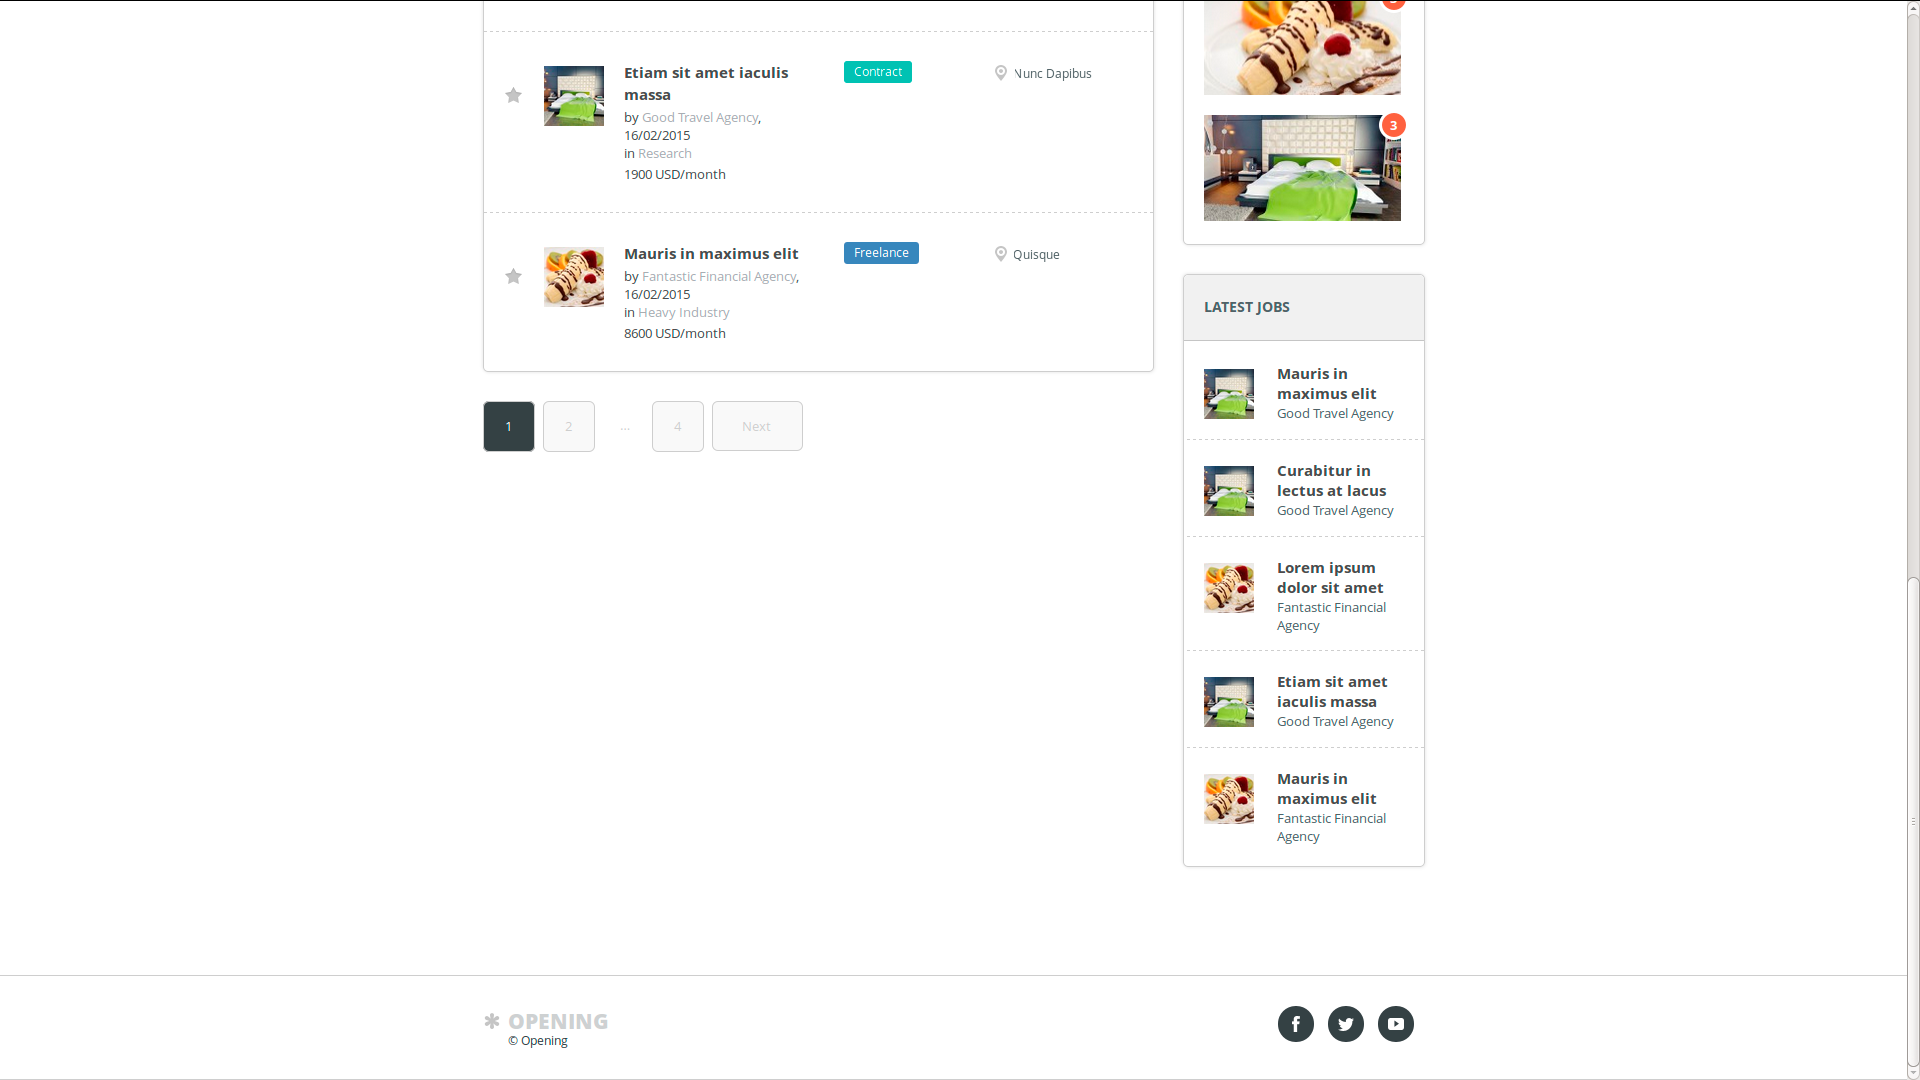 job board pro screenshots bestwebsoft help center jobs page display in front end widget of the latest jobs and footer